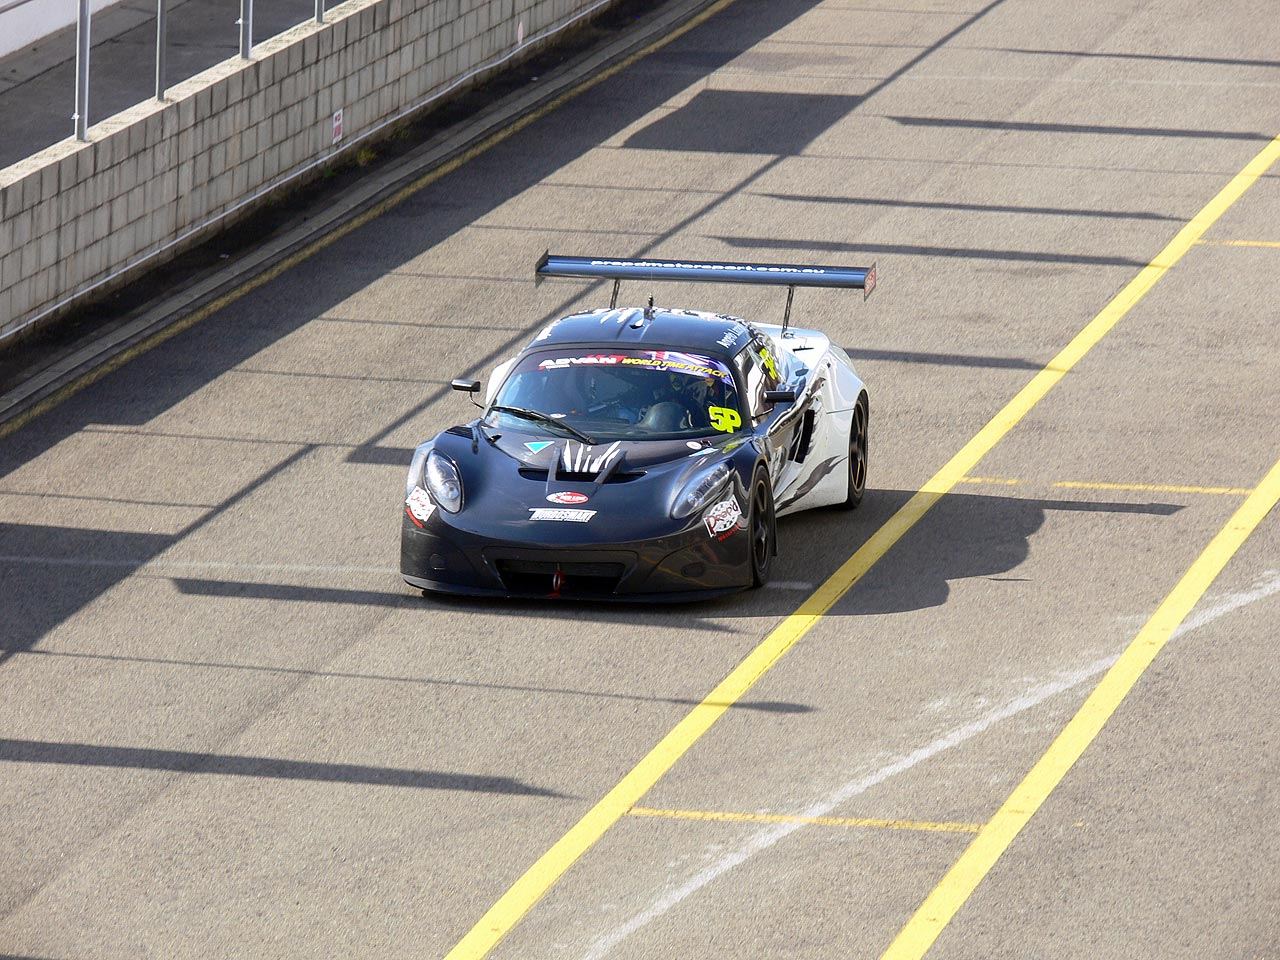 Warren Luff in the Prep'd Motorsport Lotus Exige GT3 coming back into the pits.